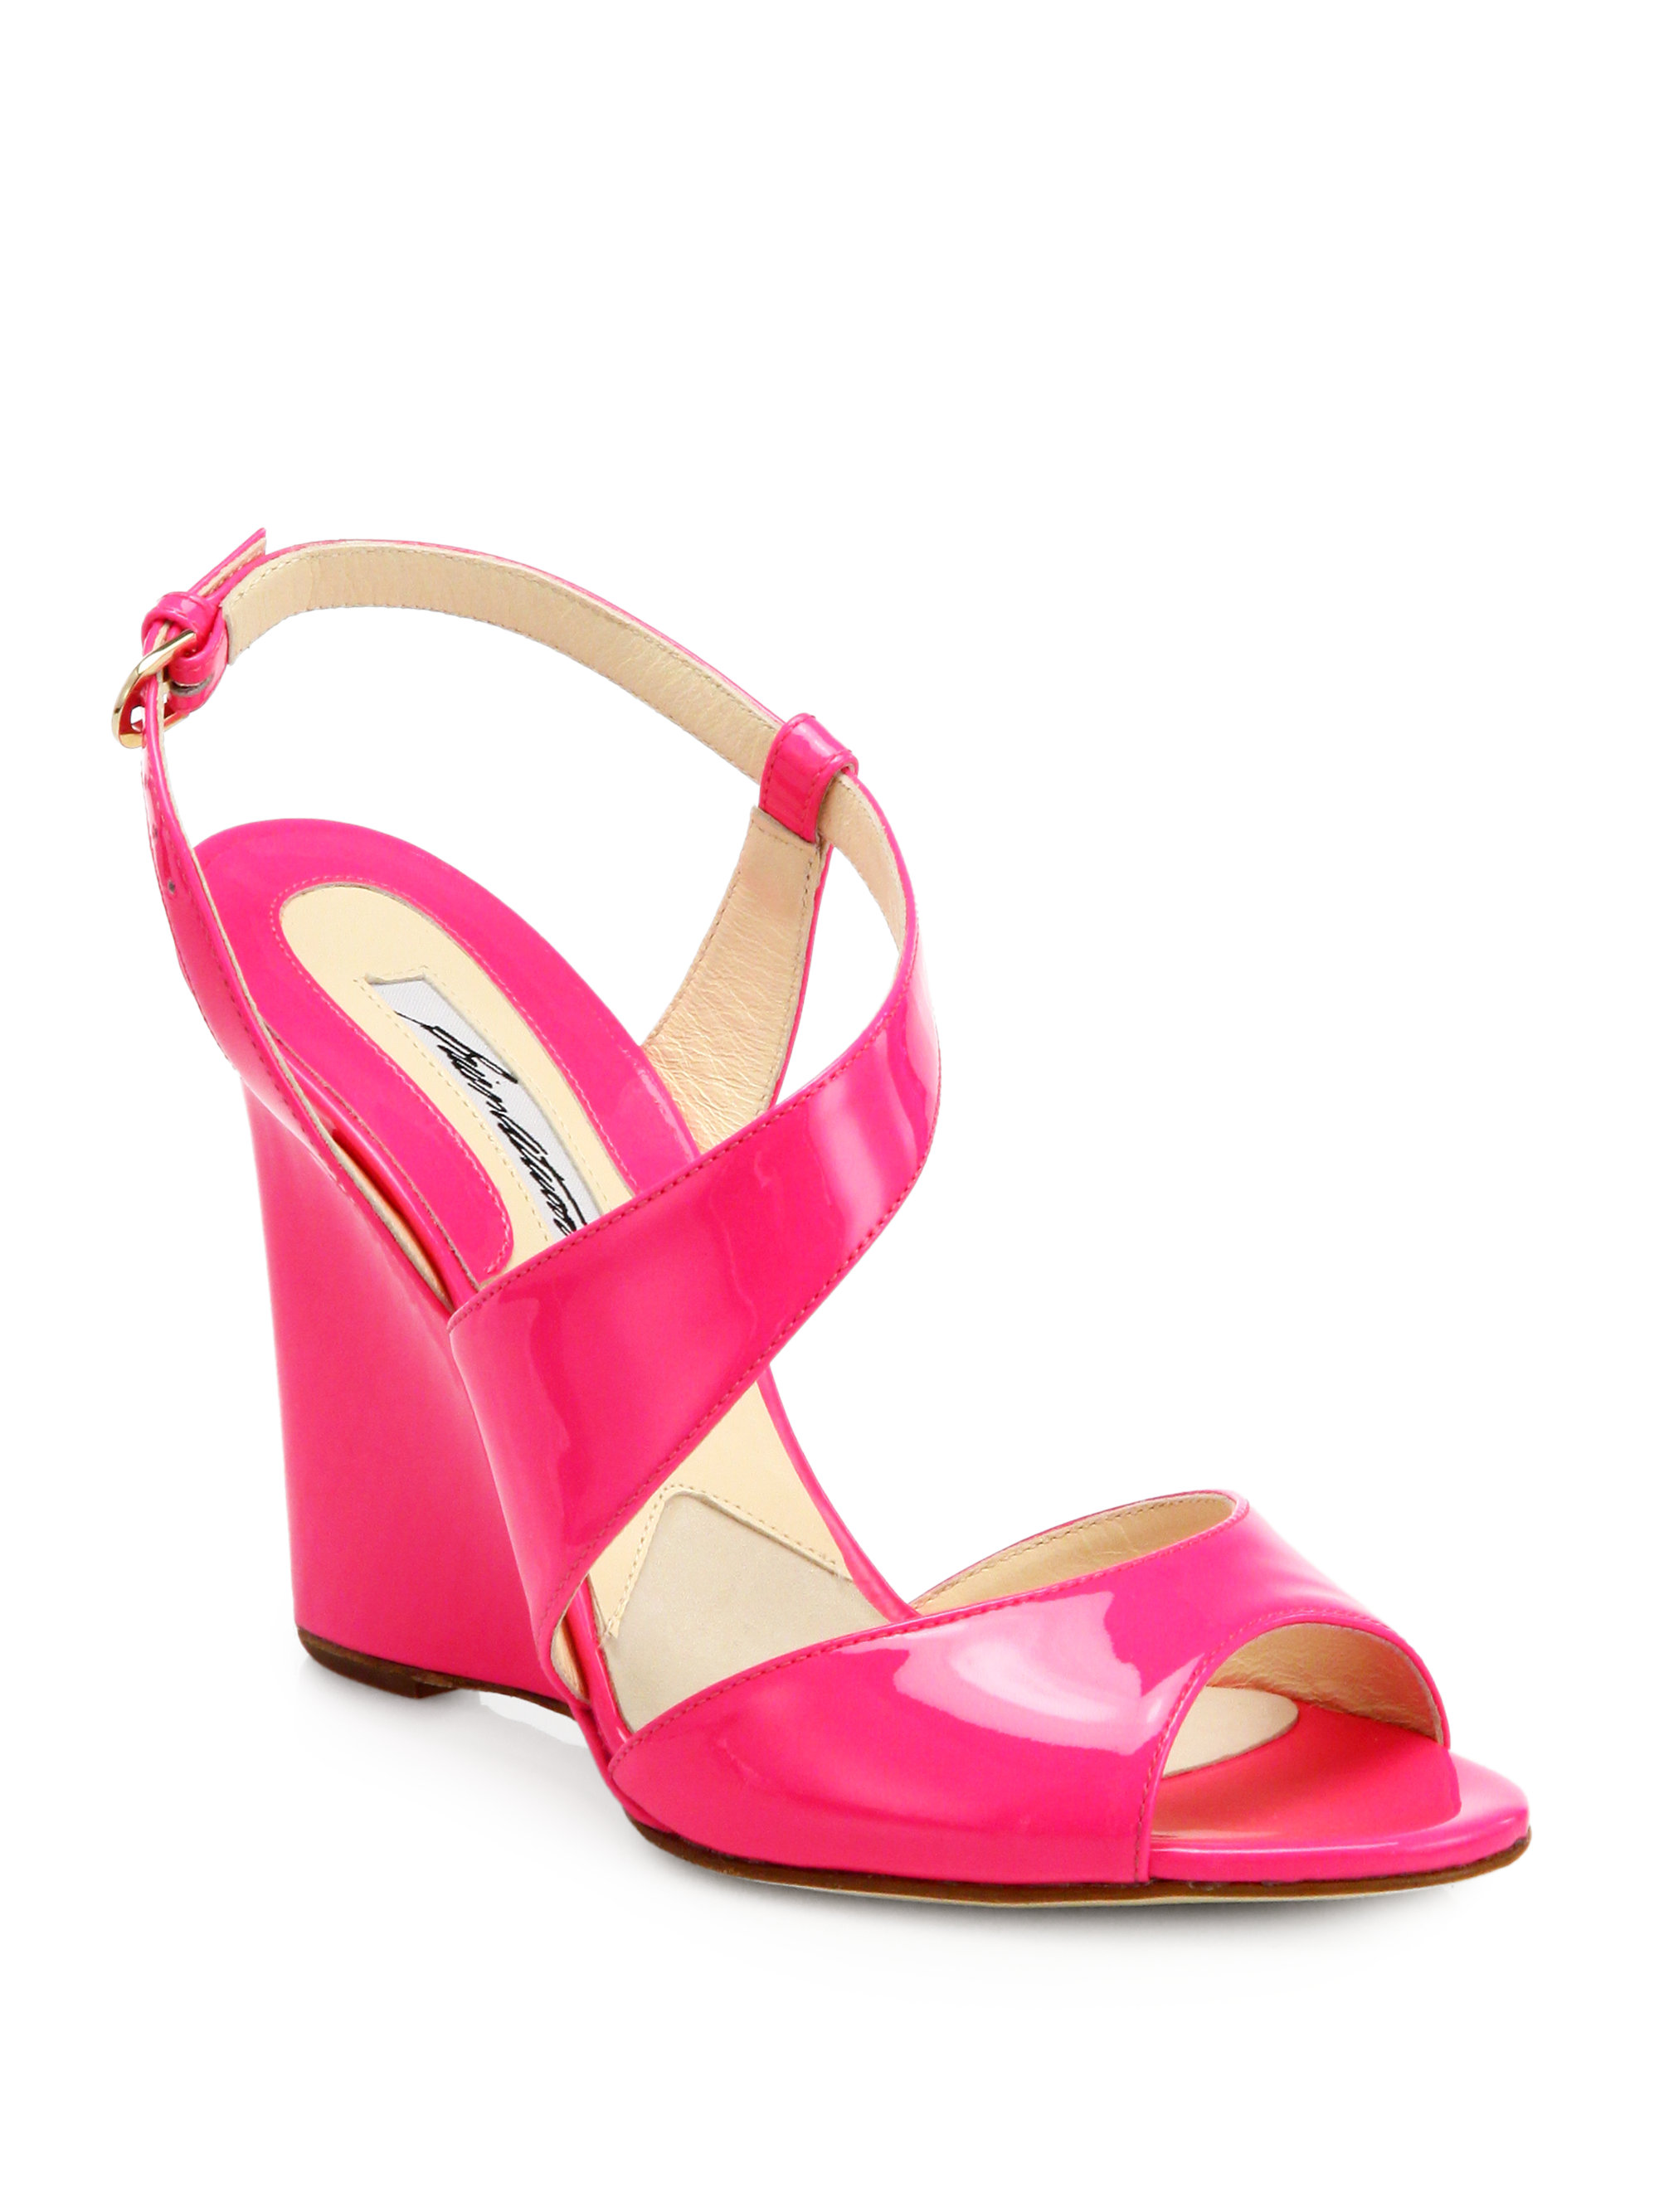 Brian Atwood Anabel Patent Leather Wedge Sandals In Pink